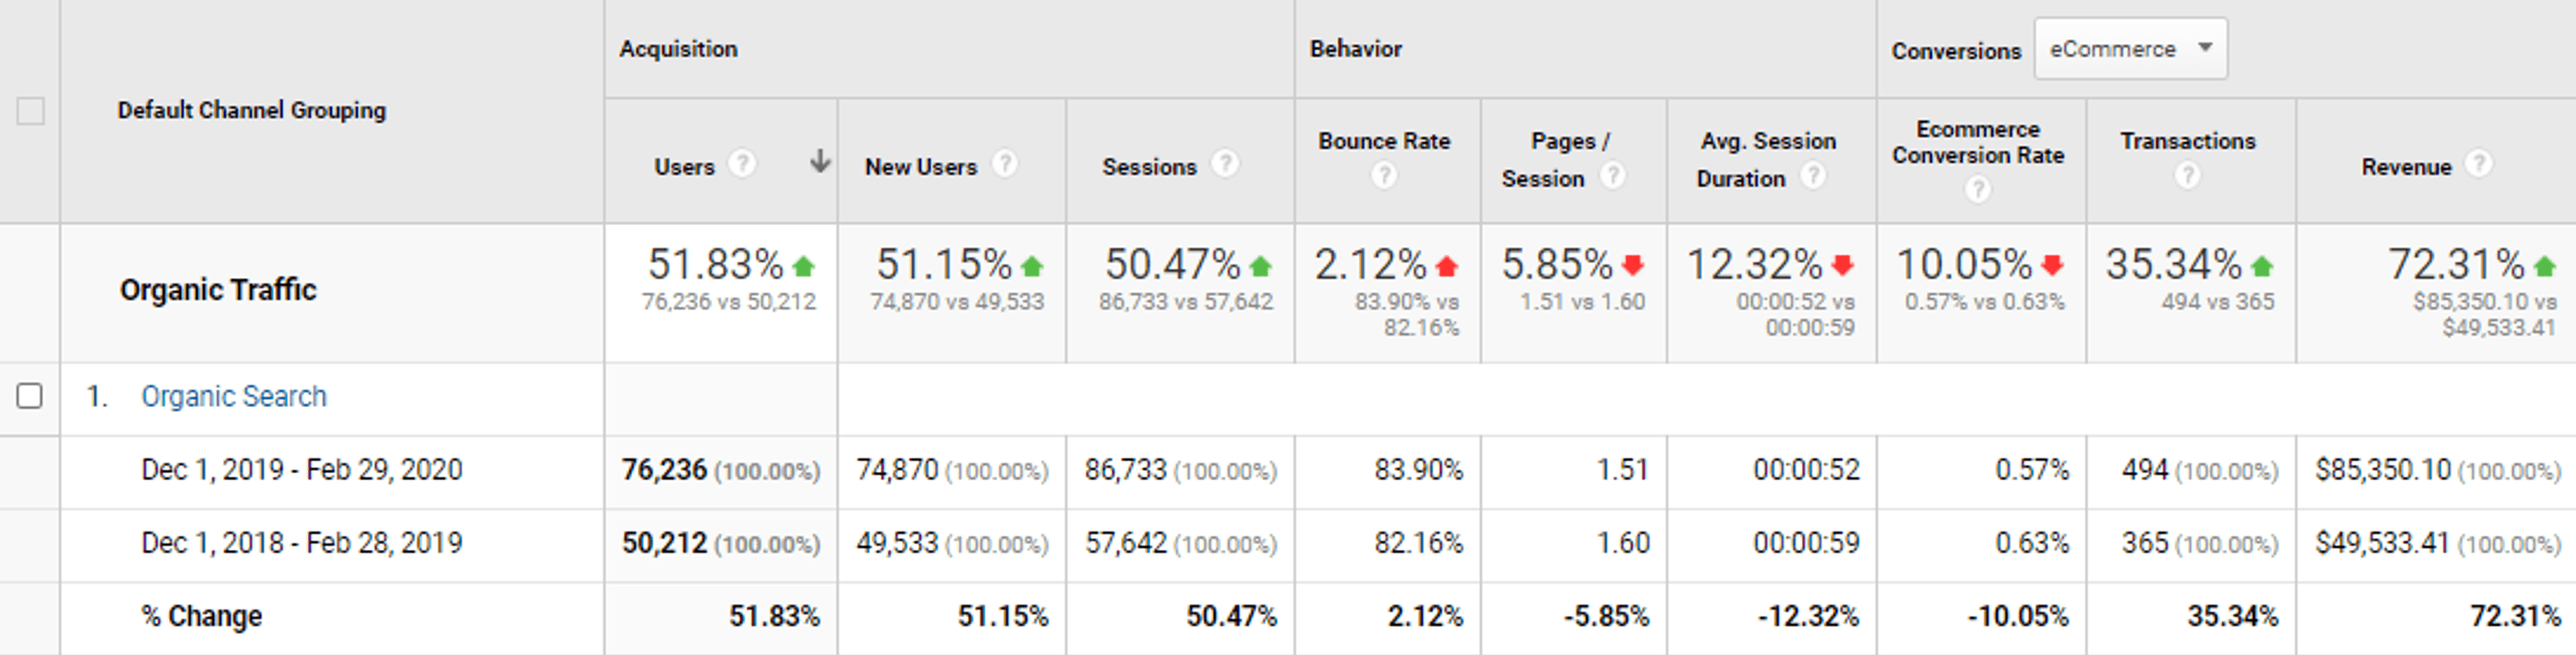 channel grouping and organic traffic ahref